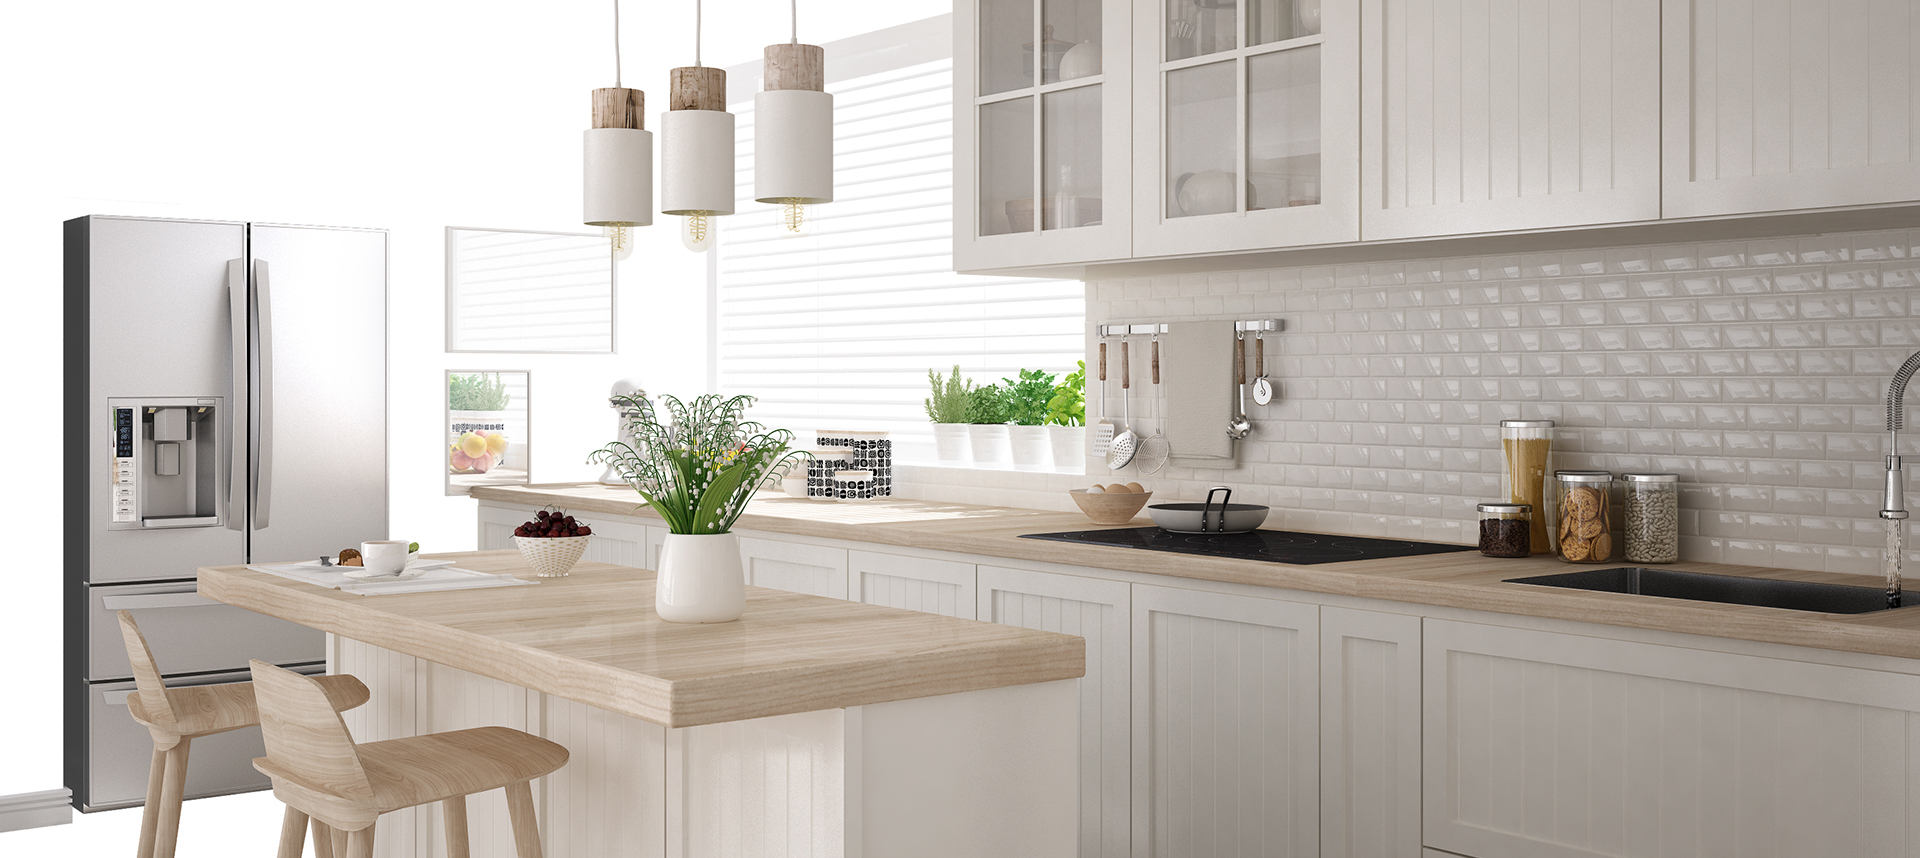 White Kitchen Design by Unica Concept